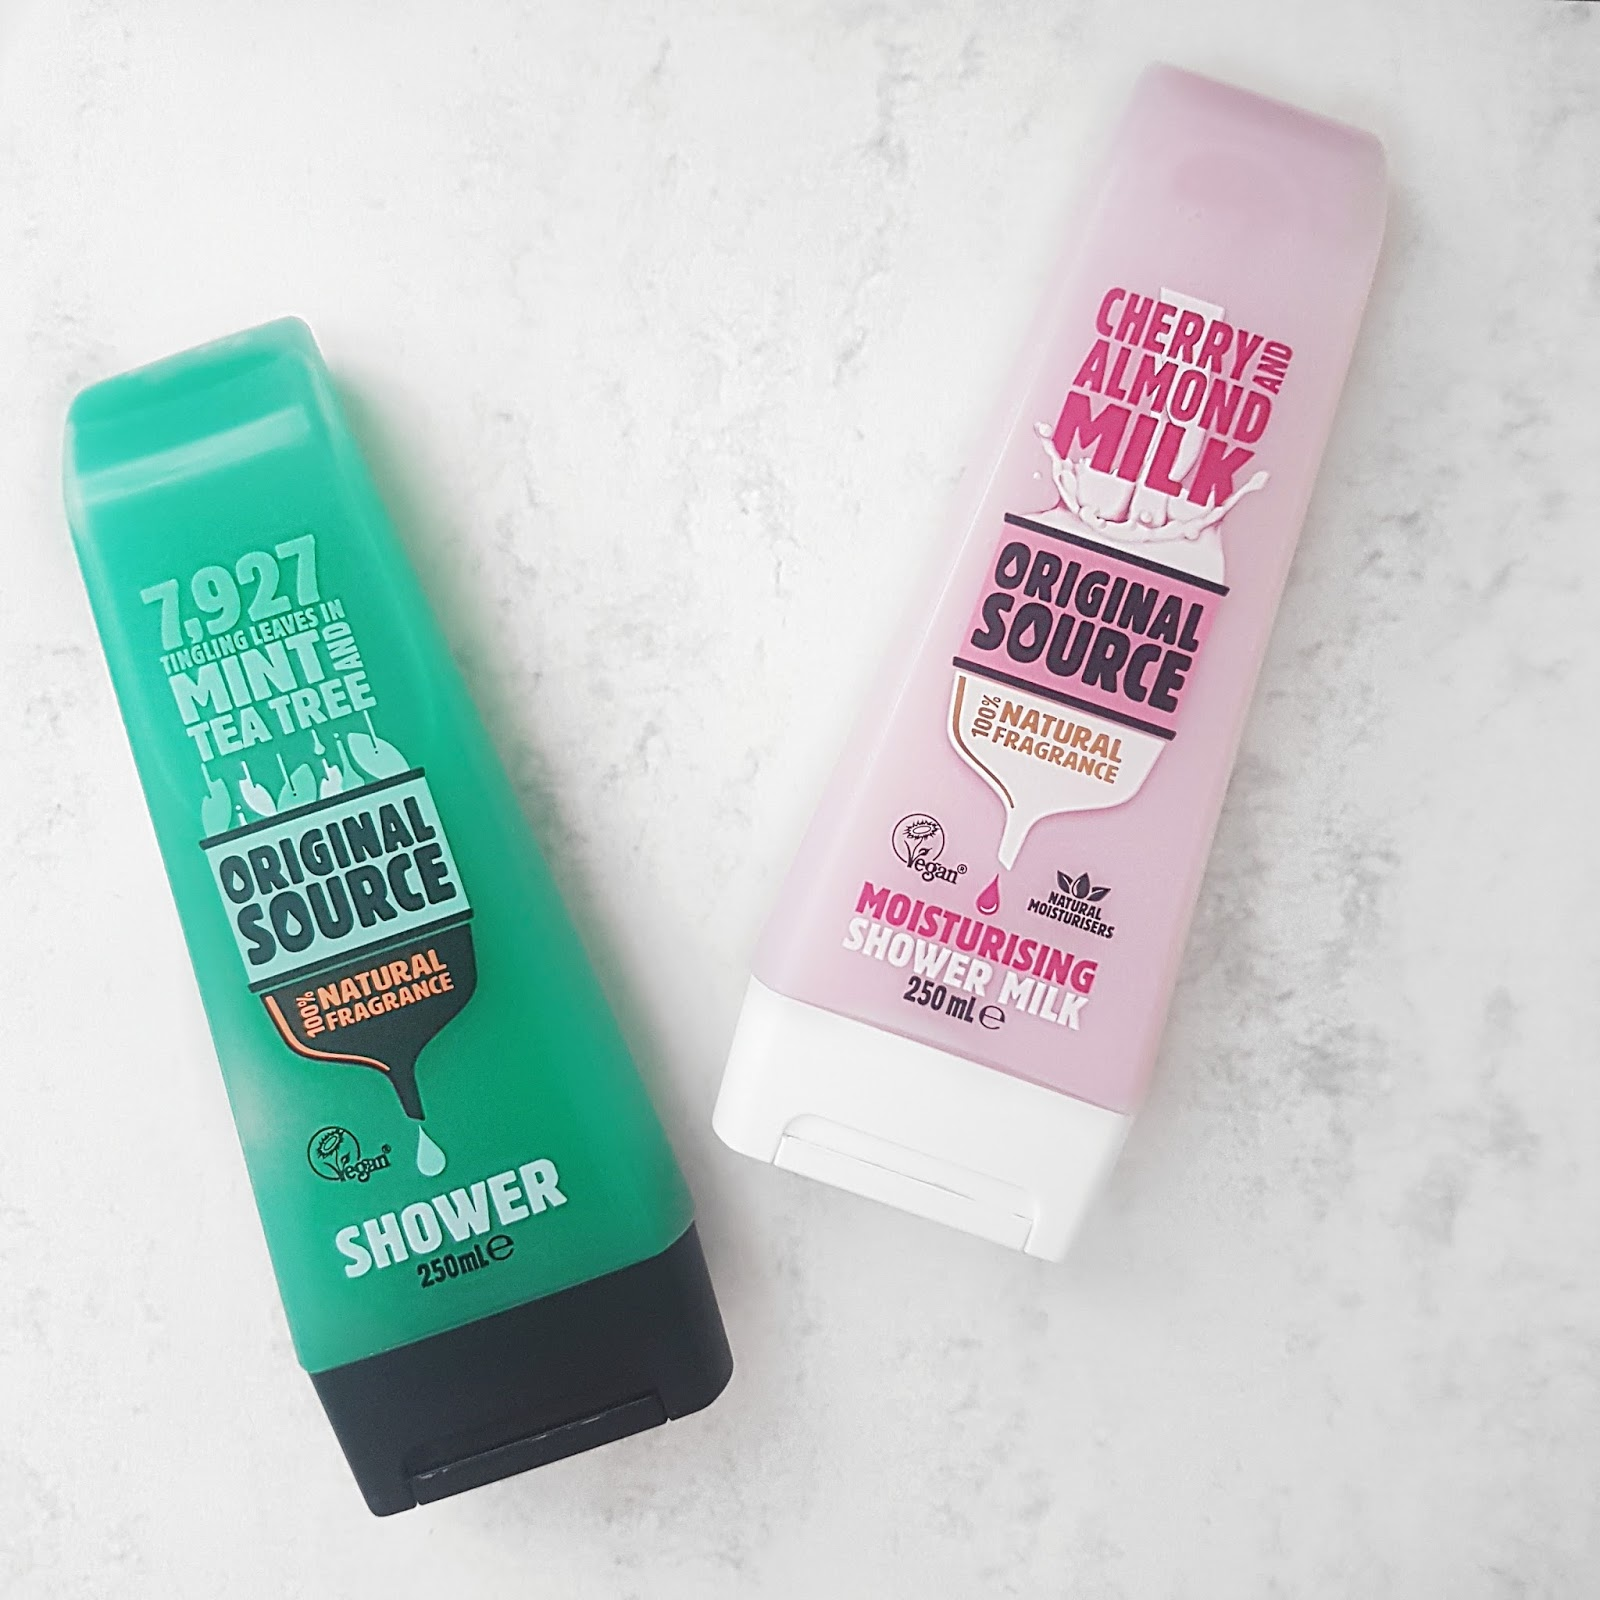 Original Source Shower Gels